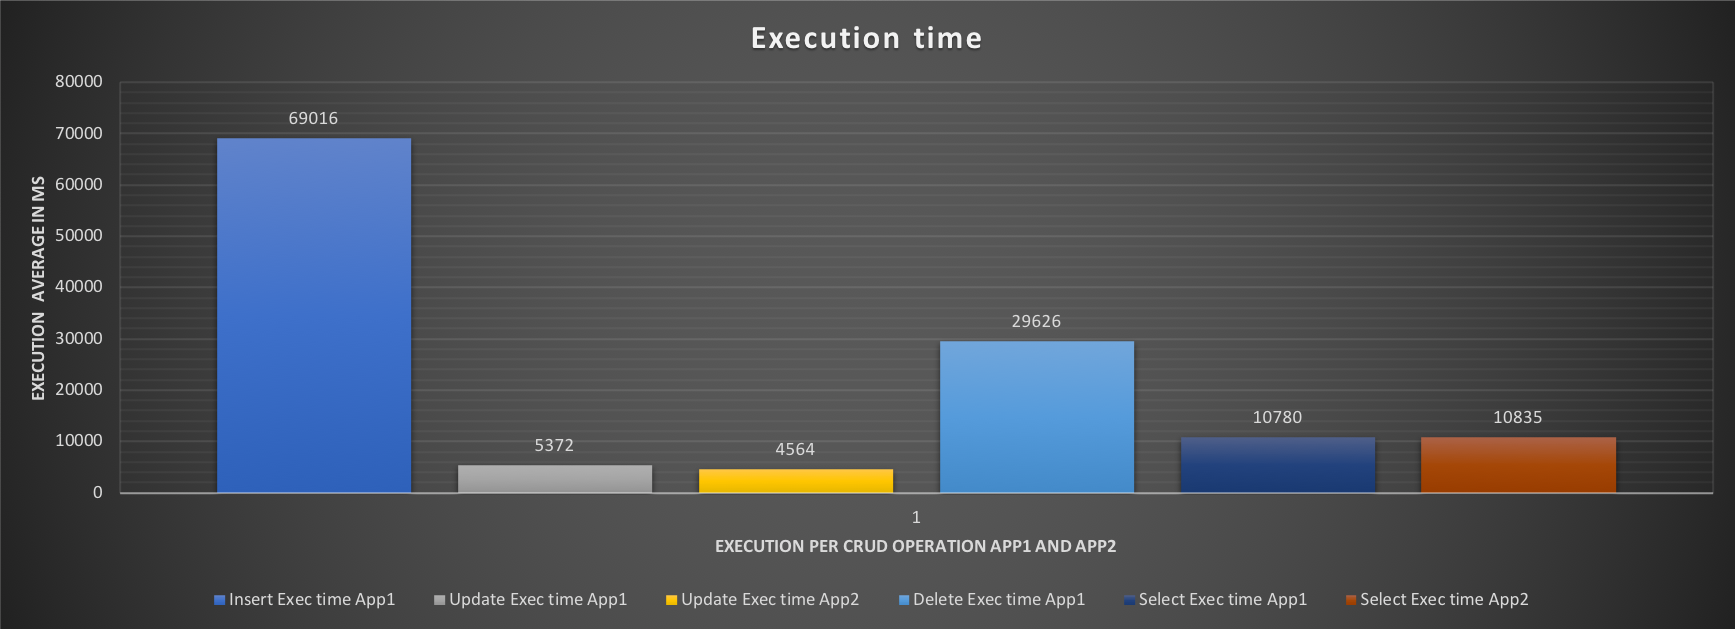 execution_time1